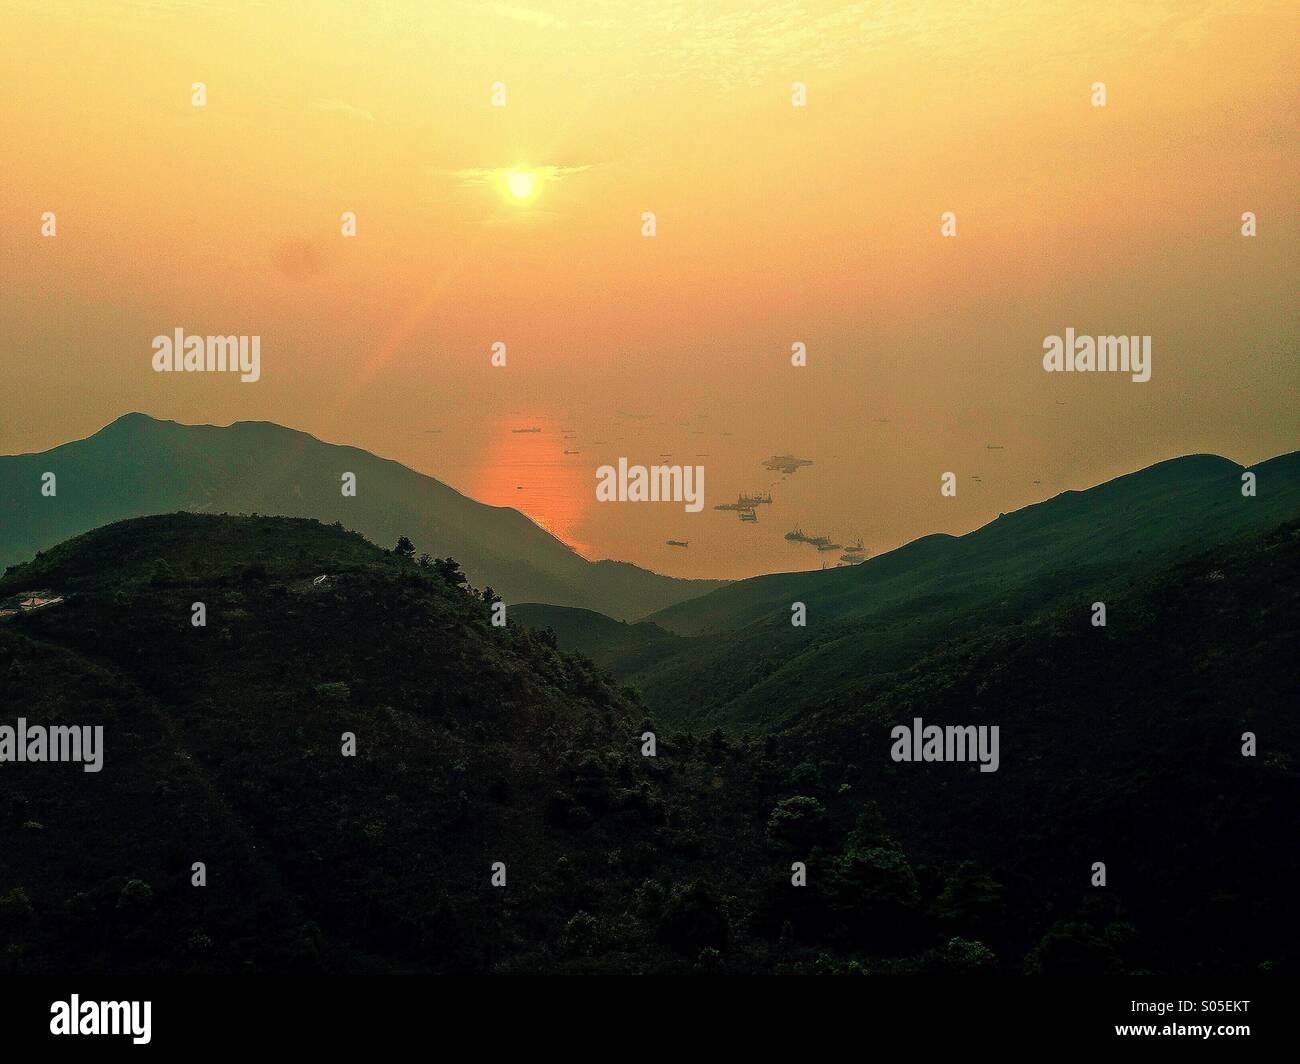 View of the South China Sea from Hong Kong Island. - Stock Image